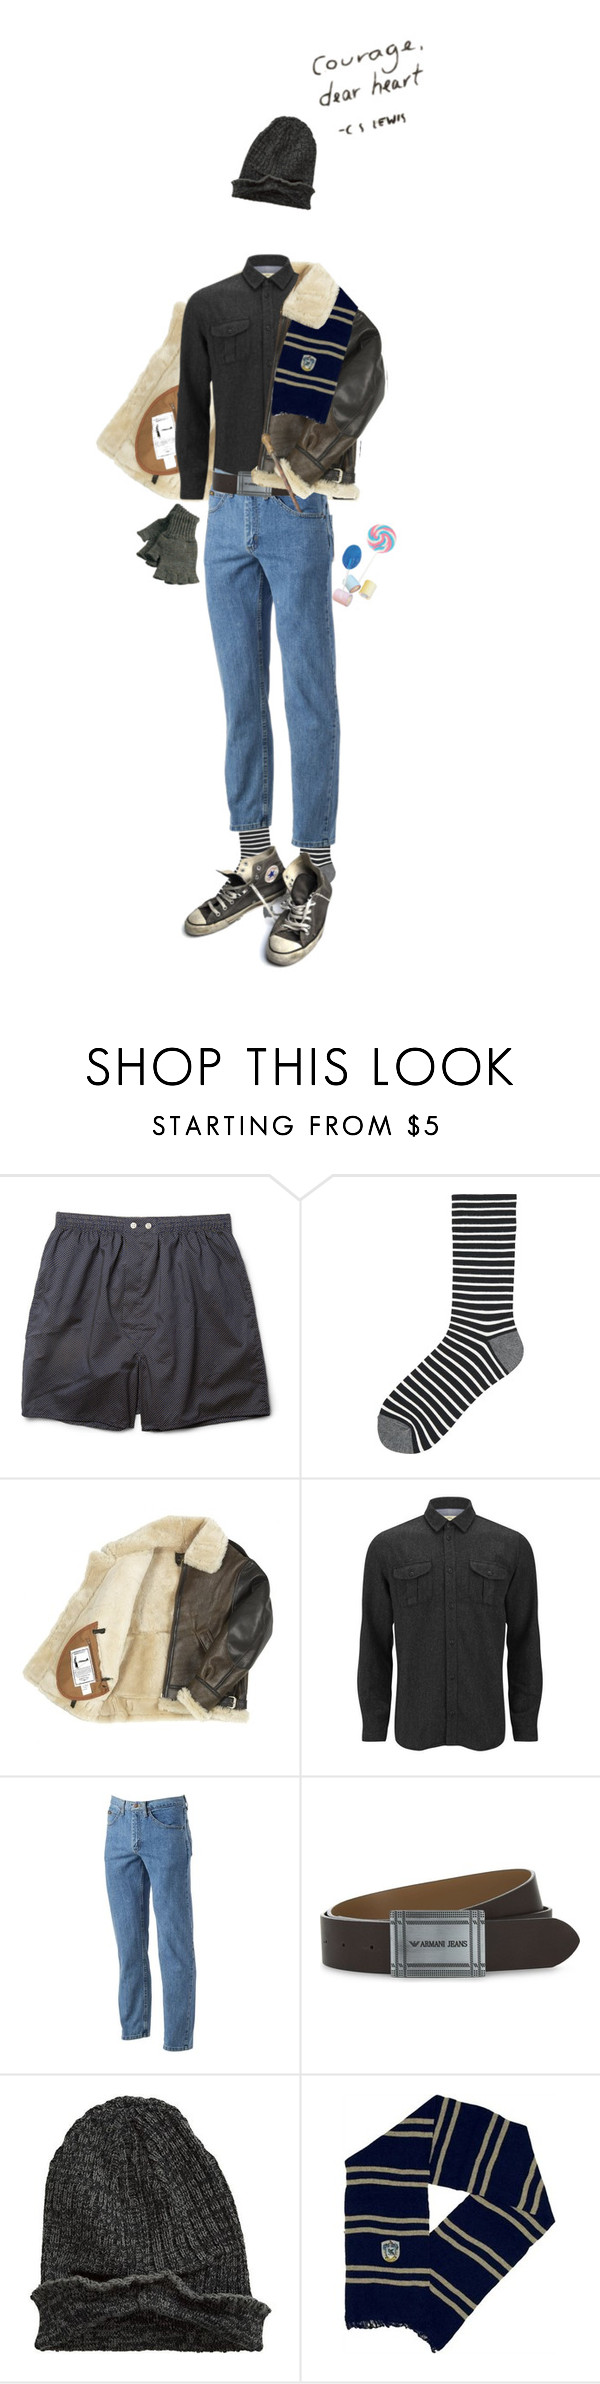 """i don't need courage i need heart"" by beowulf ❤ liked on Polyvore featuring Derek Rose, Uniqlo, SUIT, Lee, Armani Jeans, Element, Converse, Barbour, men's fashion and menswear"